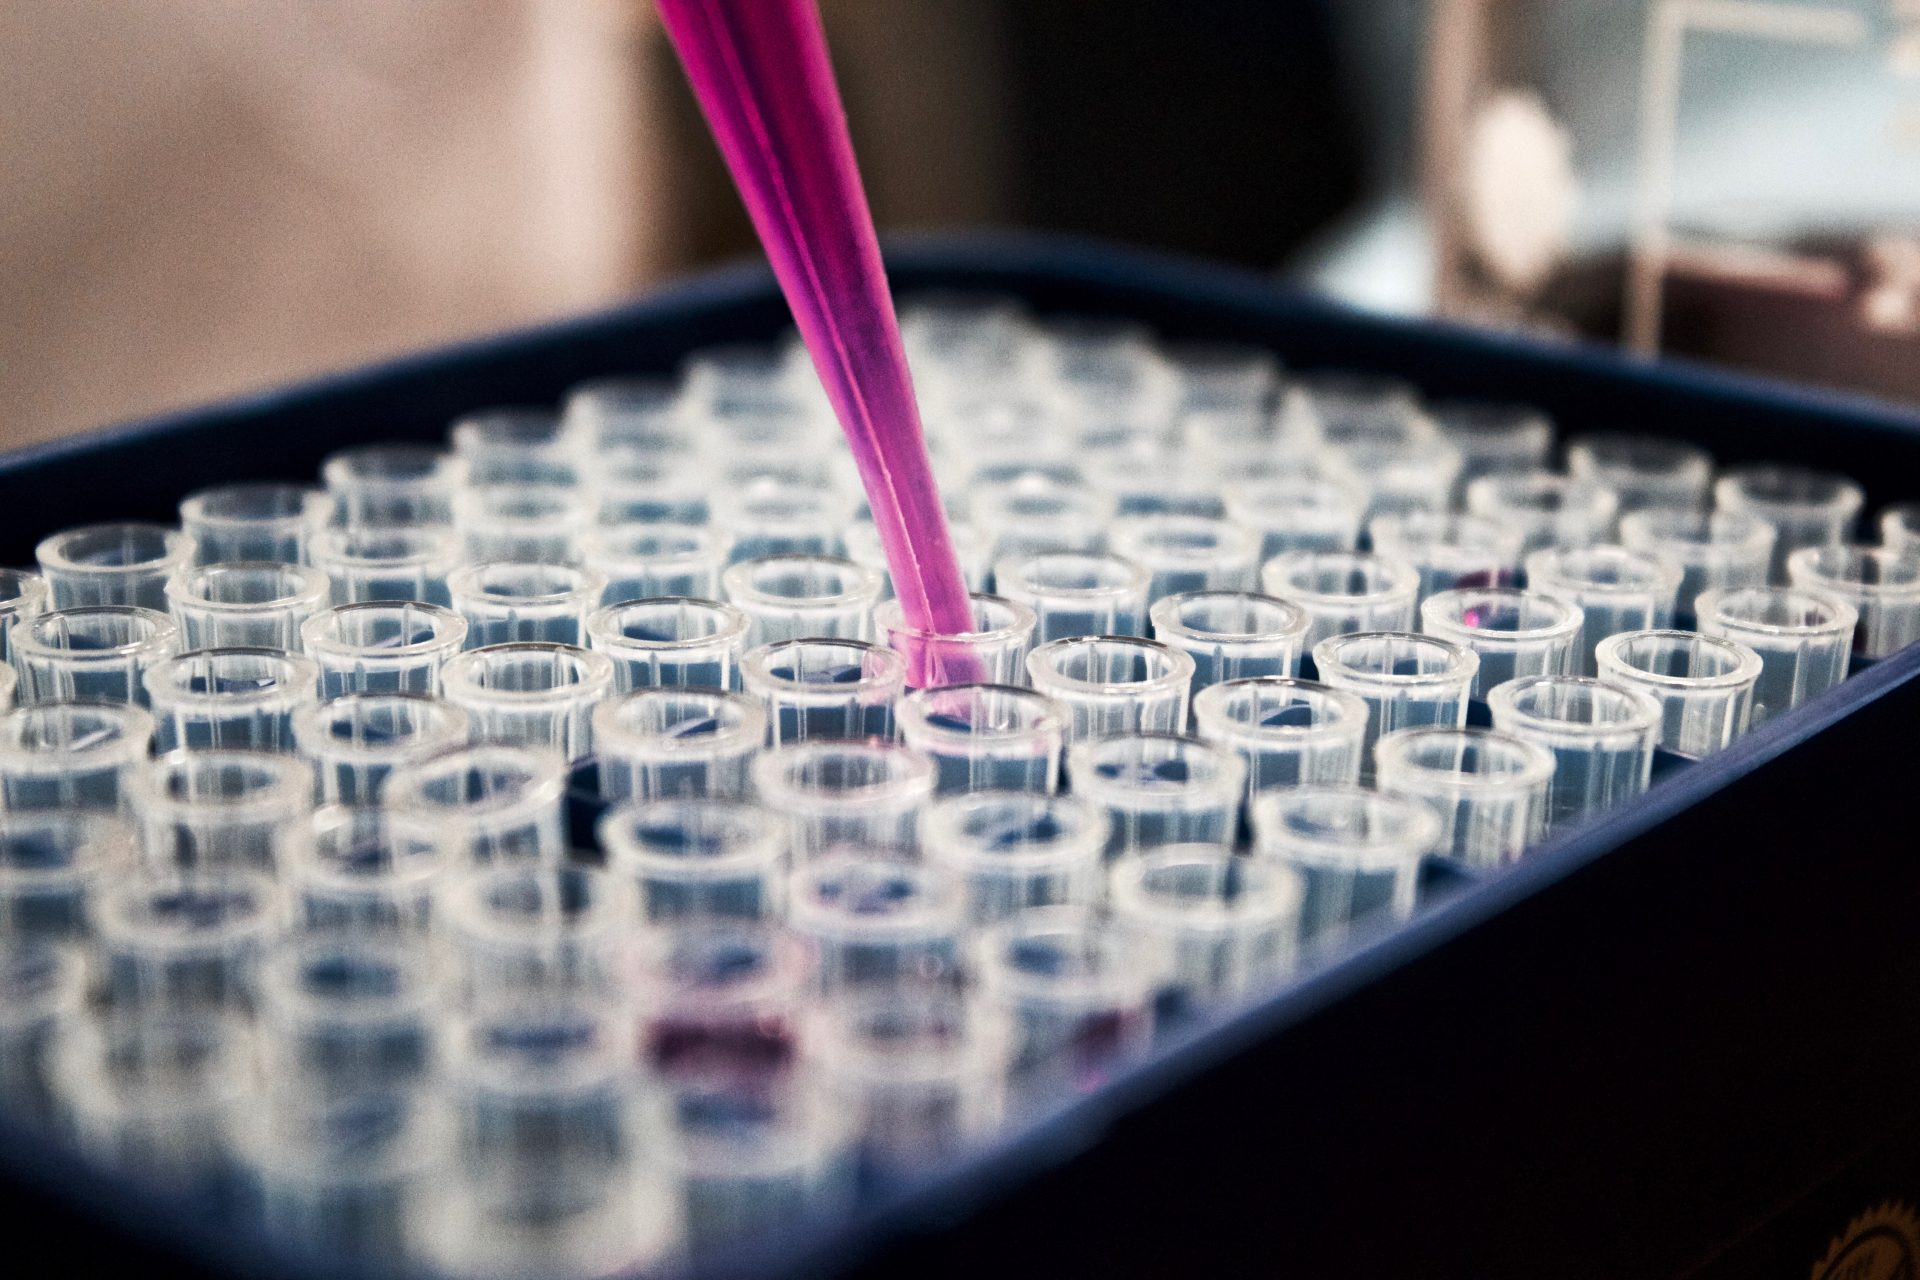 Pink liquid being syringed into a rack of test tubes